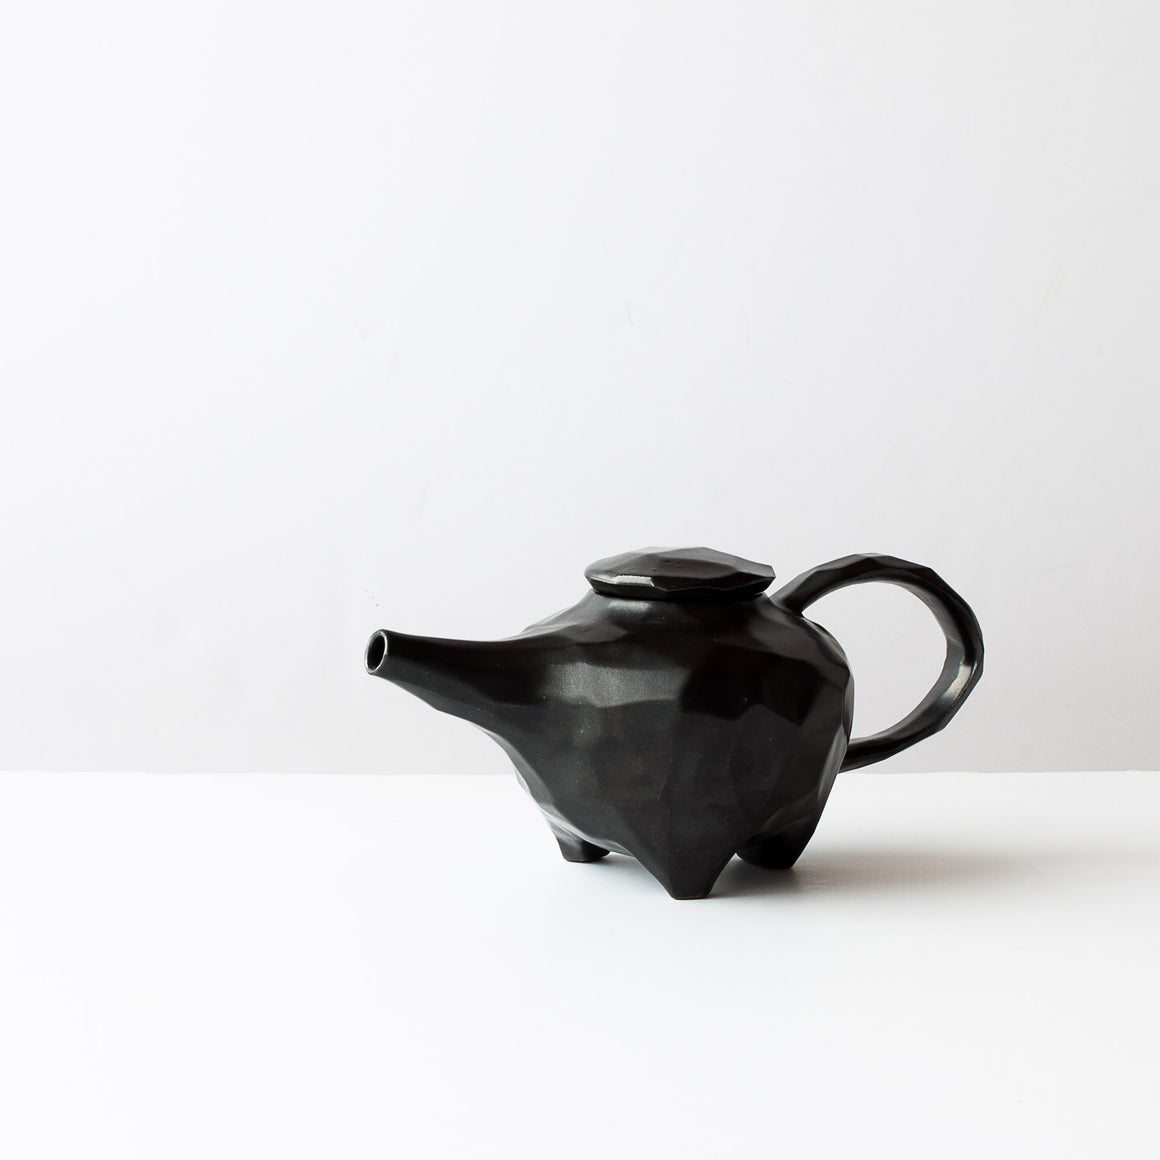 Handmade Faceted Black Ceramic Teapots - Sold by Chic & Basta